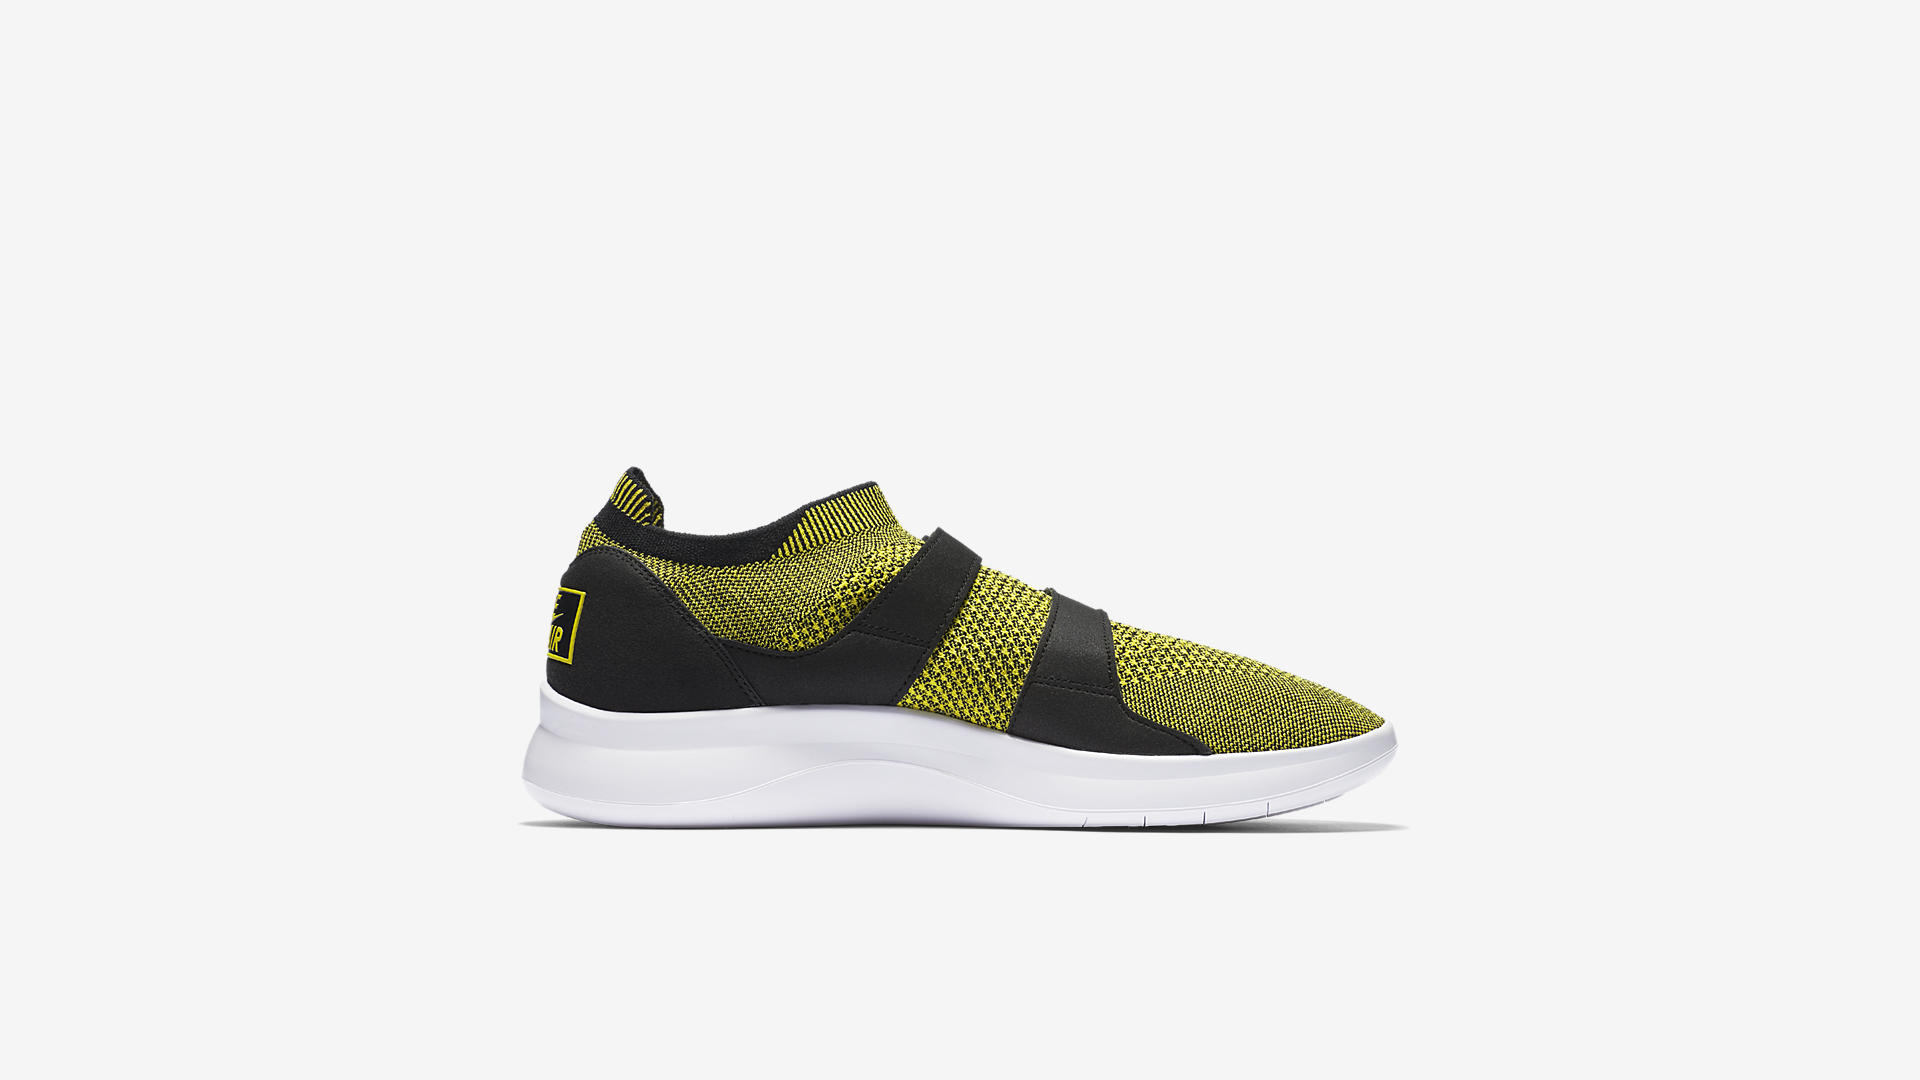 Nike Air Sock Racer Ultra Flyknit Yellow Strike 98022 700 4